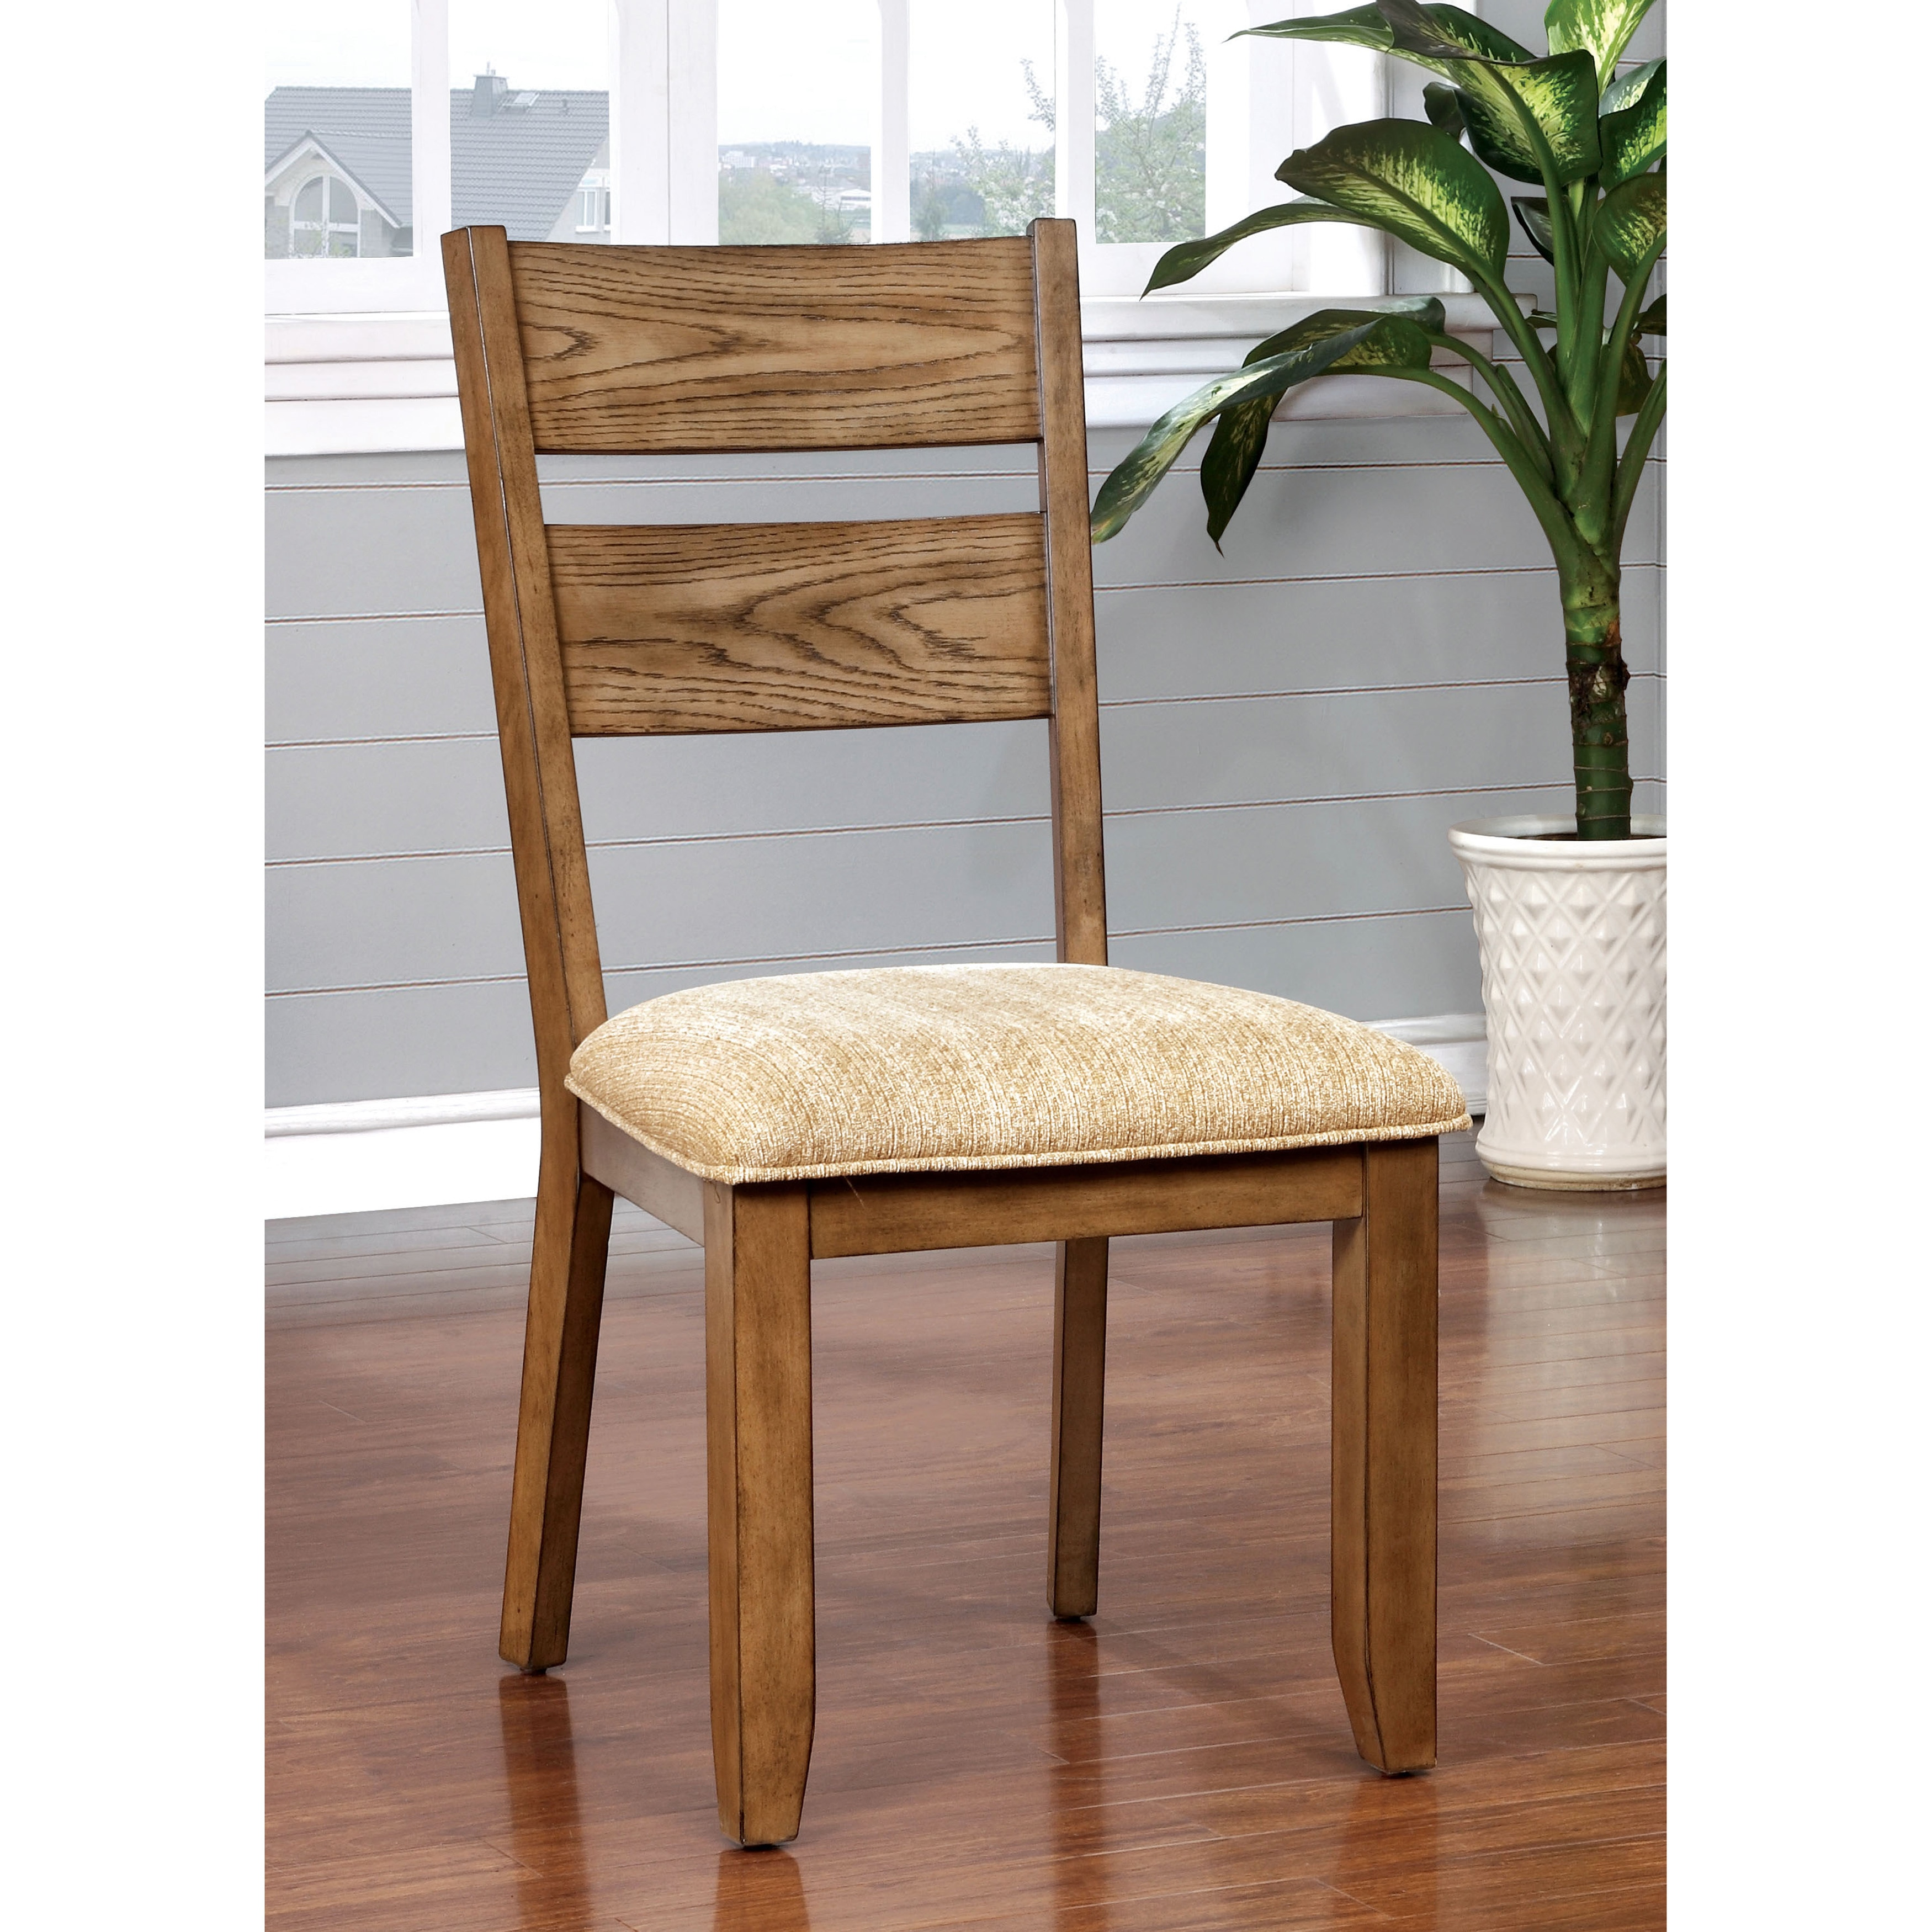 light oak dining chairs chair design love furniture of america merina country style set 2